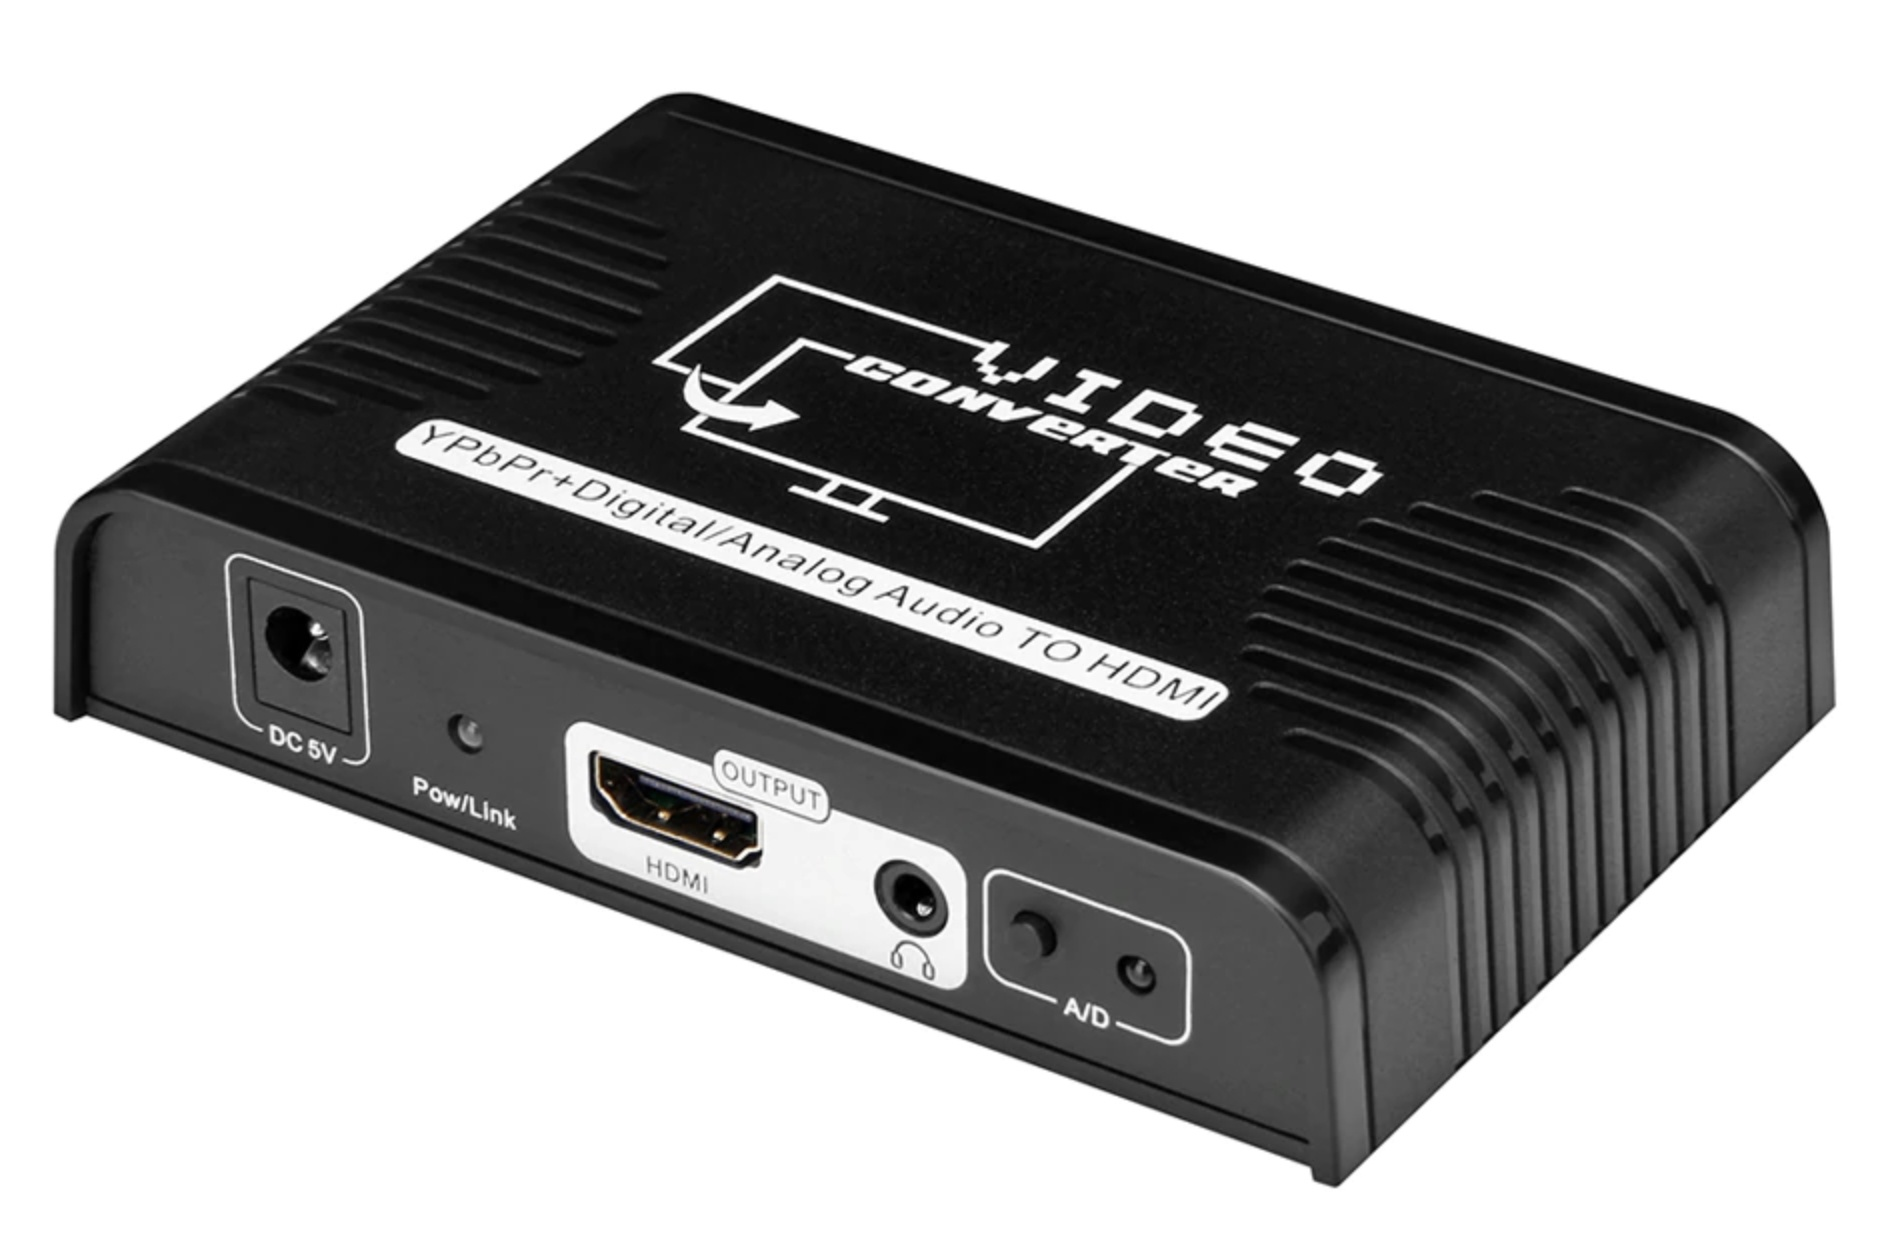 Chameleon CLKV354 - Component to HDMI Converter